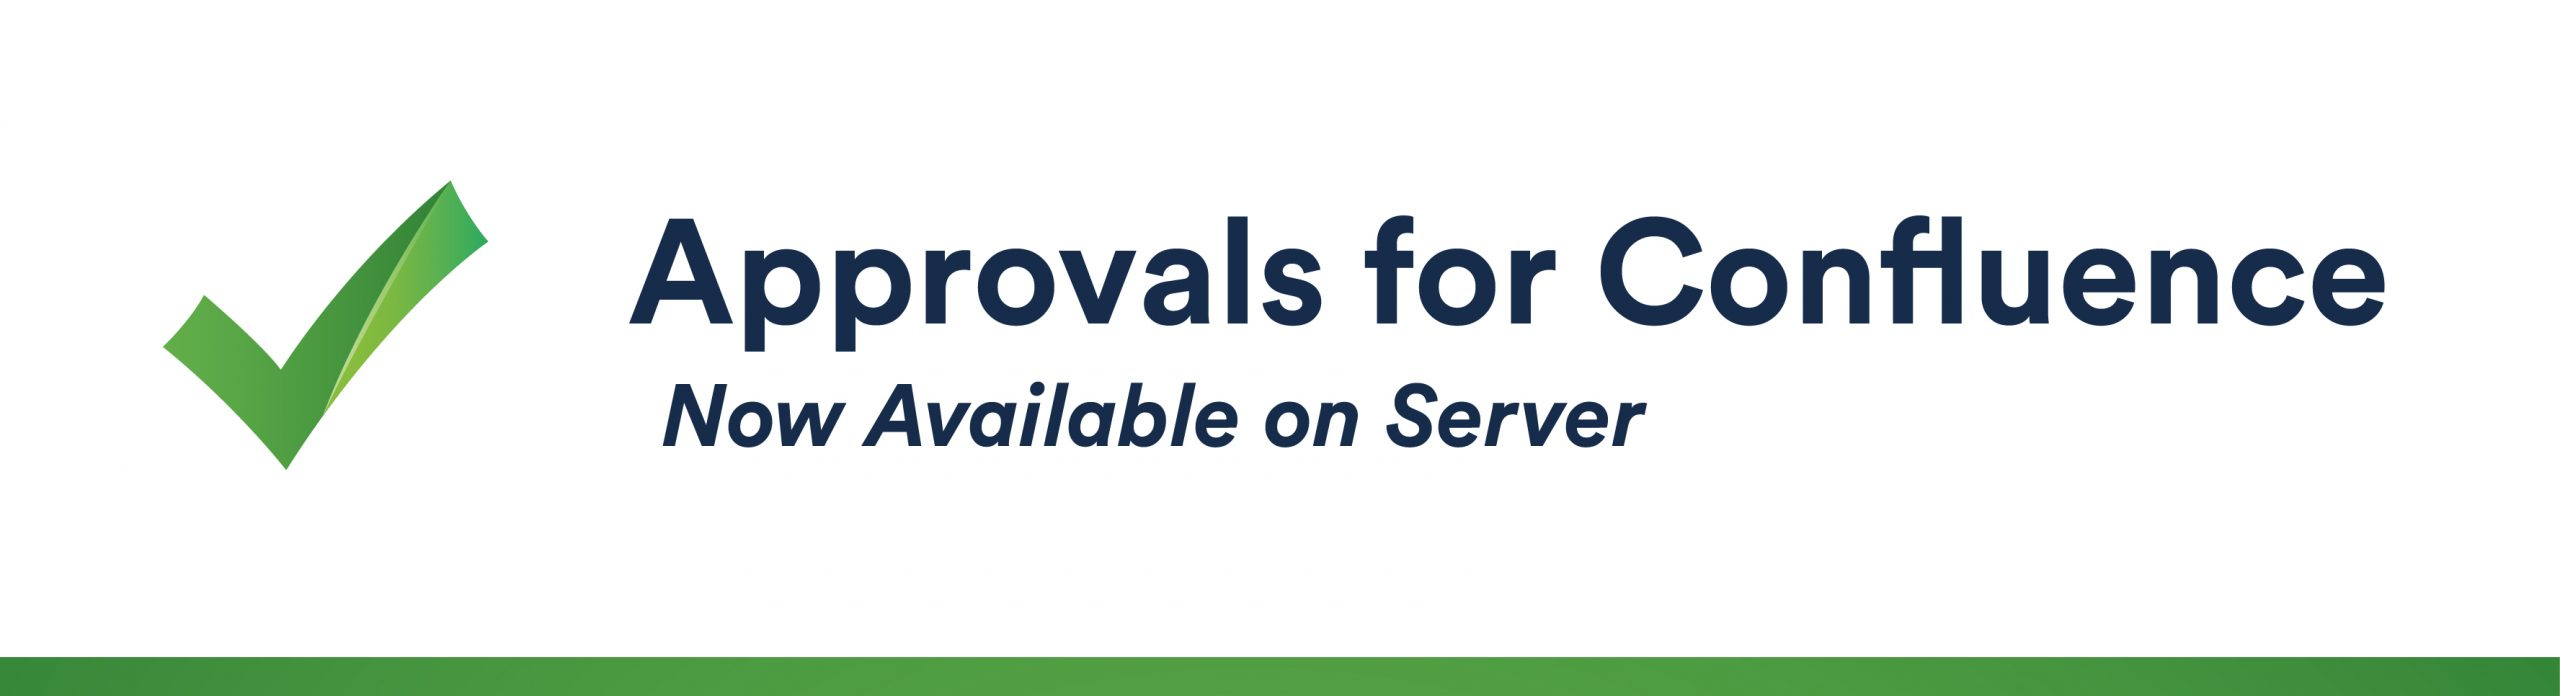 Server is Now: Approvals for Confluence